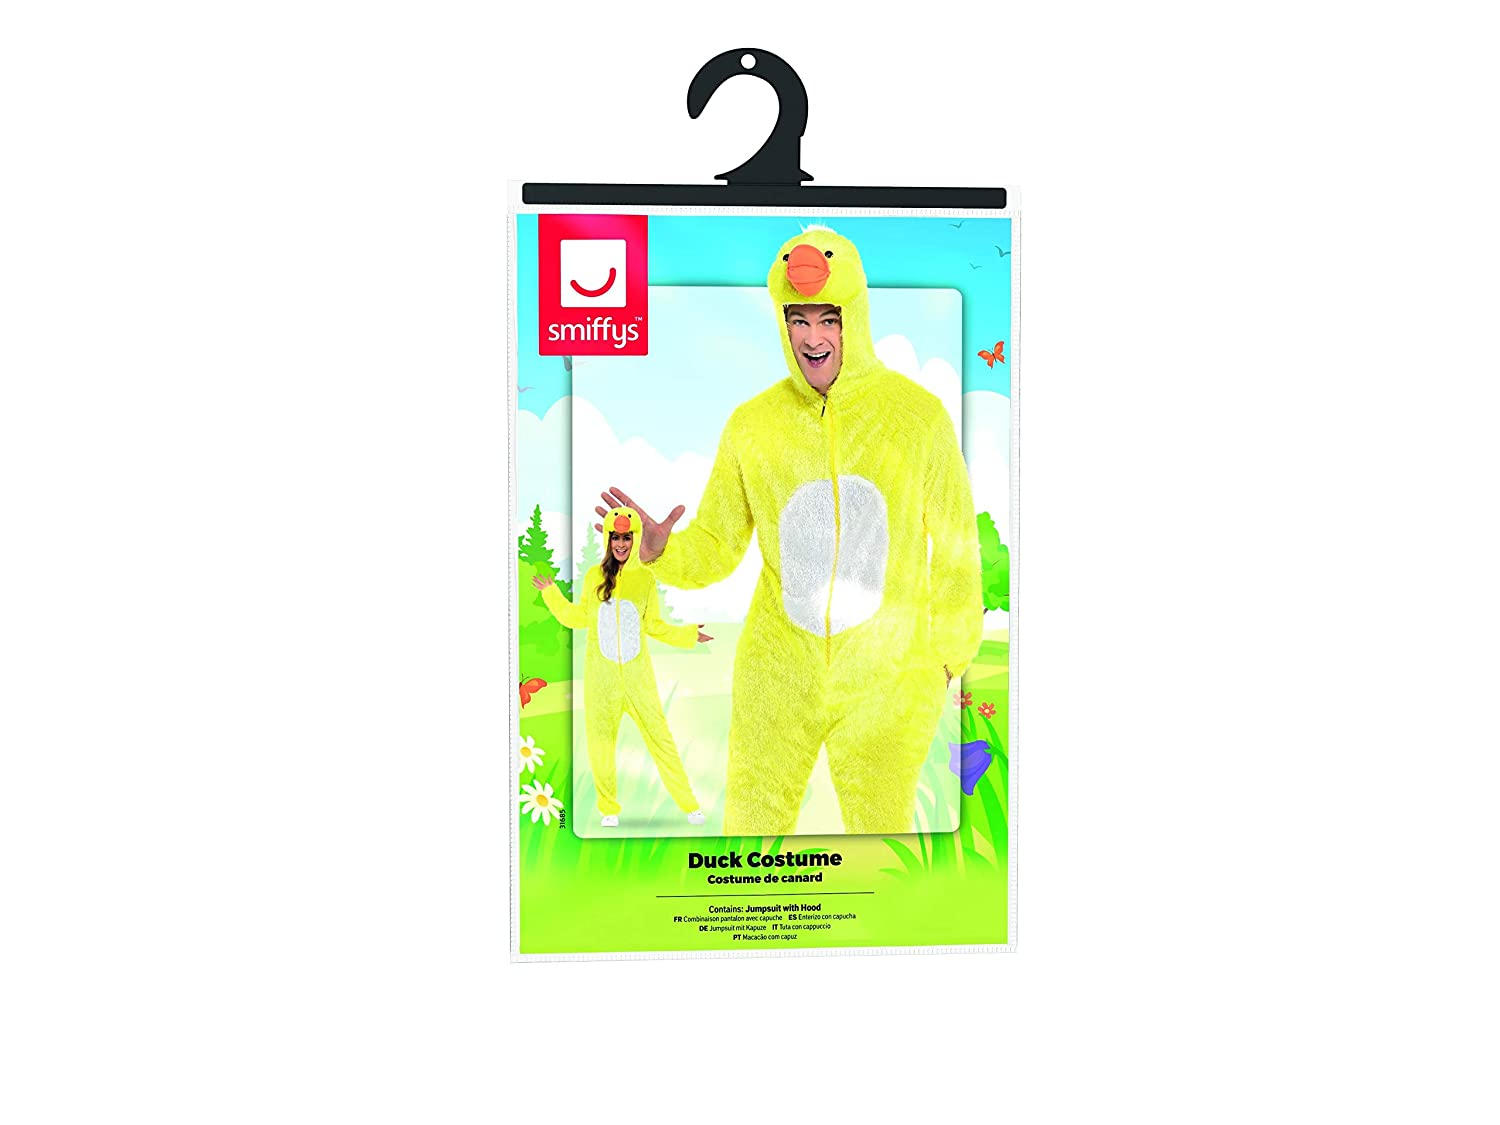 Amazon.com: Smiffys Mens Duck Costume Includes Jumpsuit with Hood: Clothing